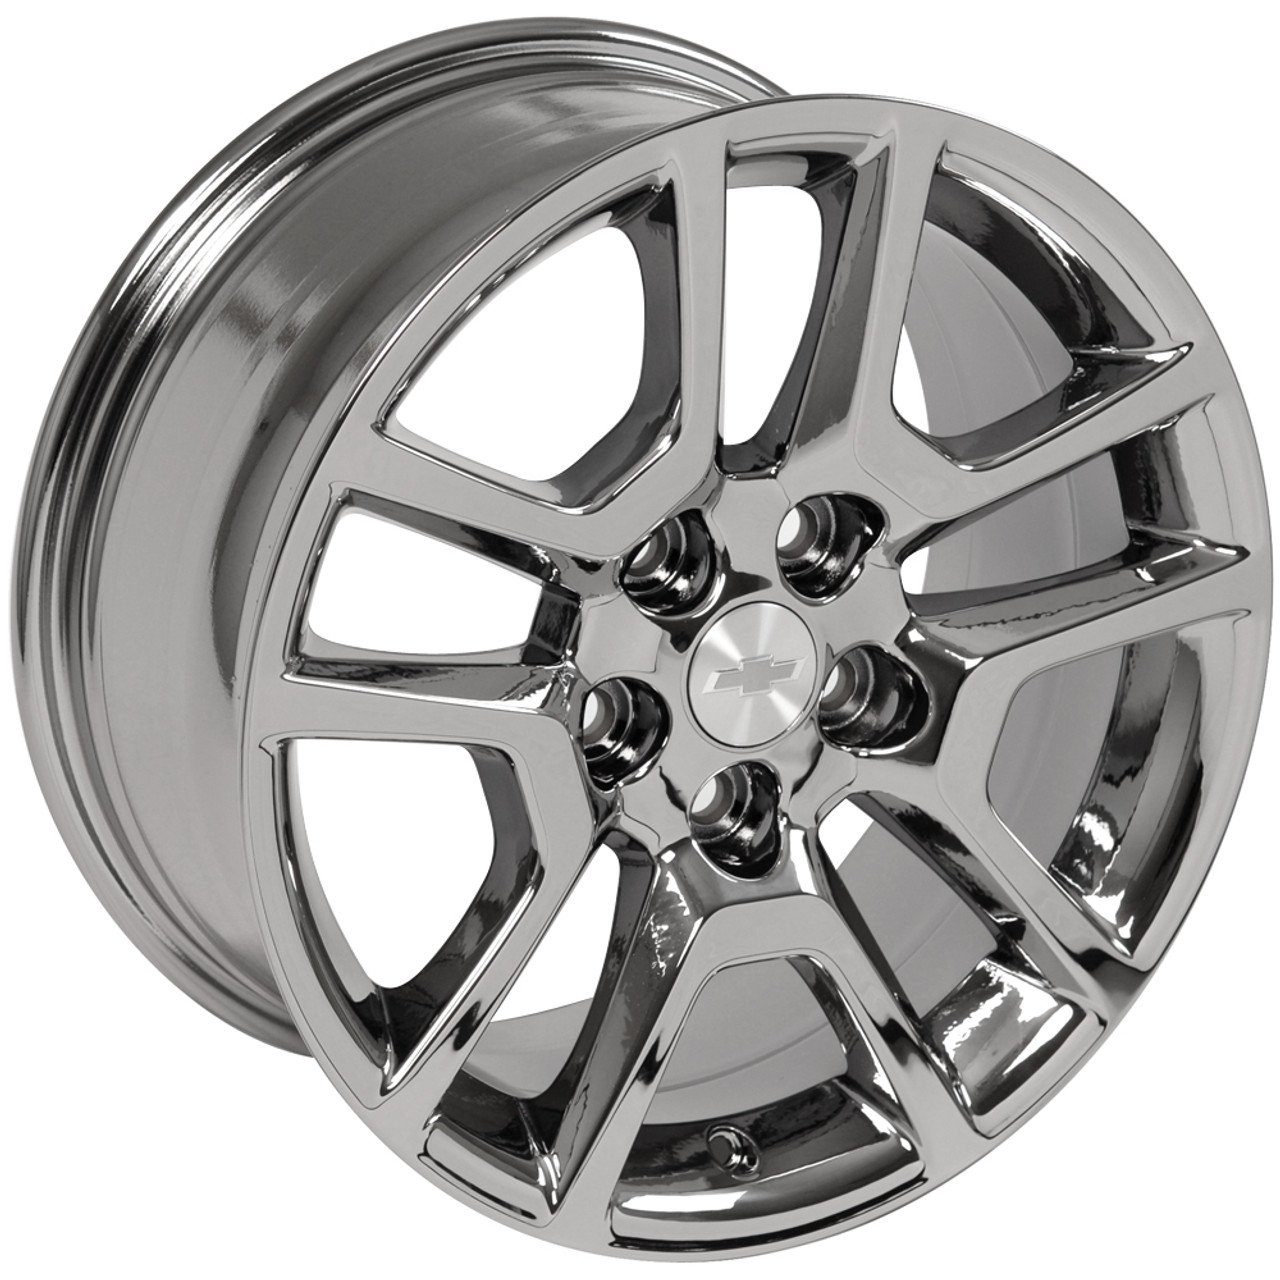 corvette product chevrolet tires stingray extreme wheels